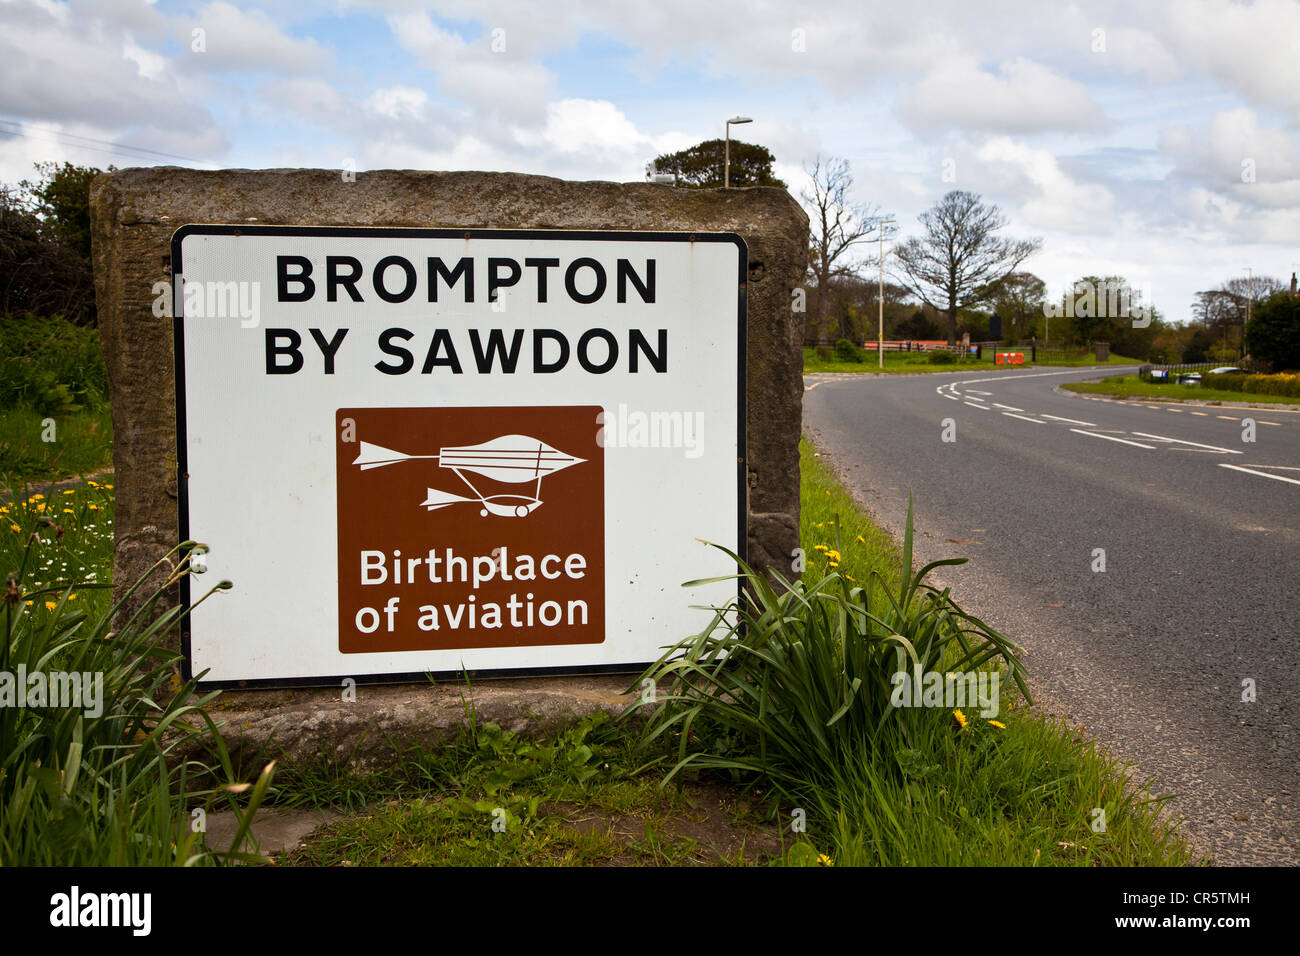 Brompton by Sawdon road sign. - Stock Image